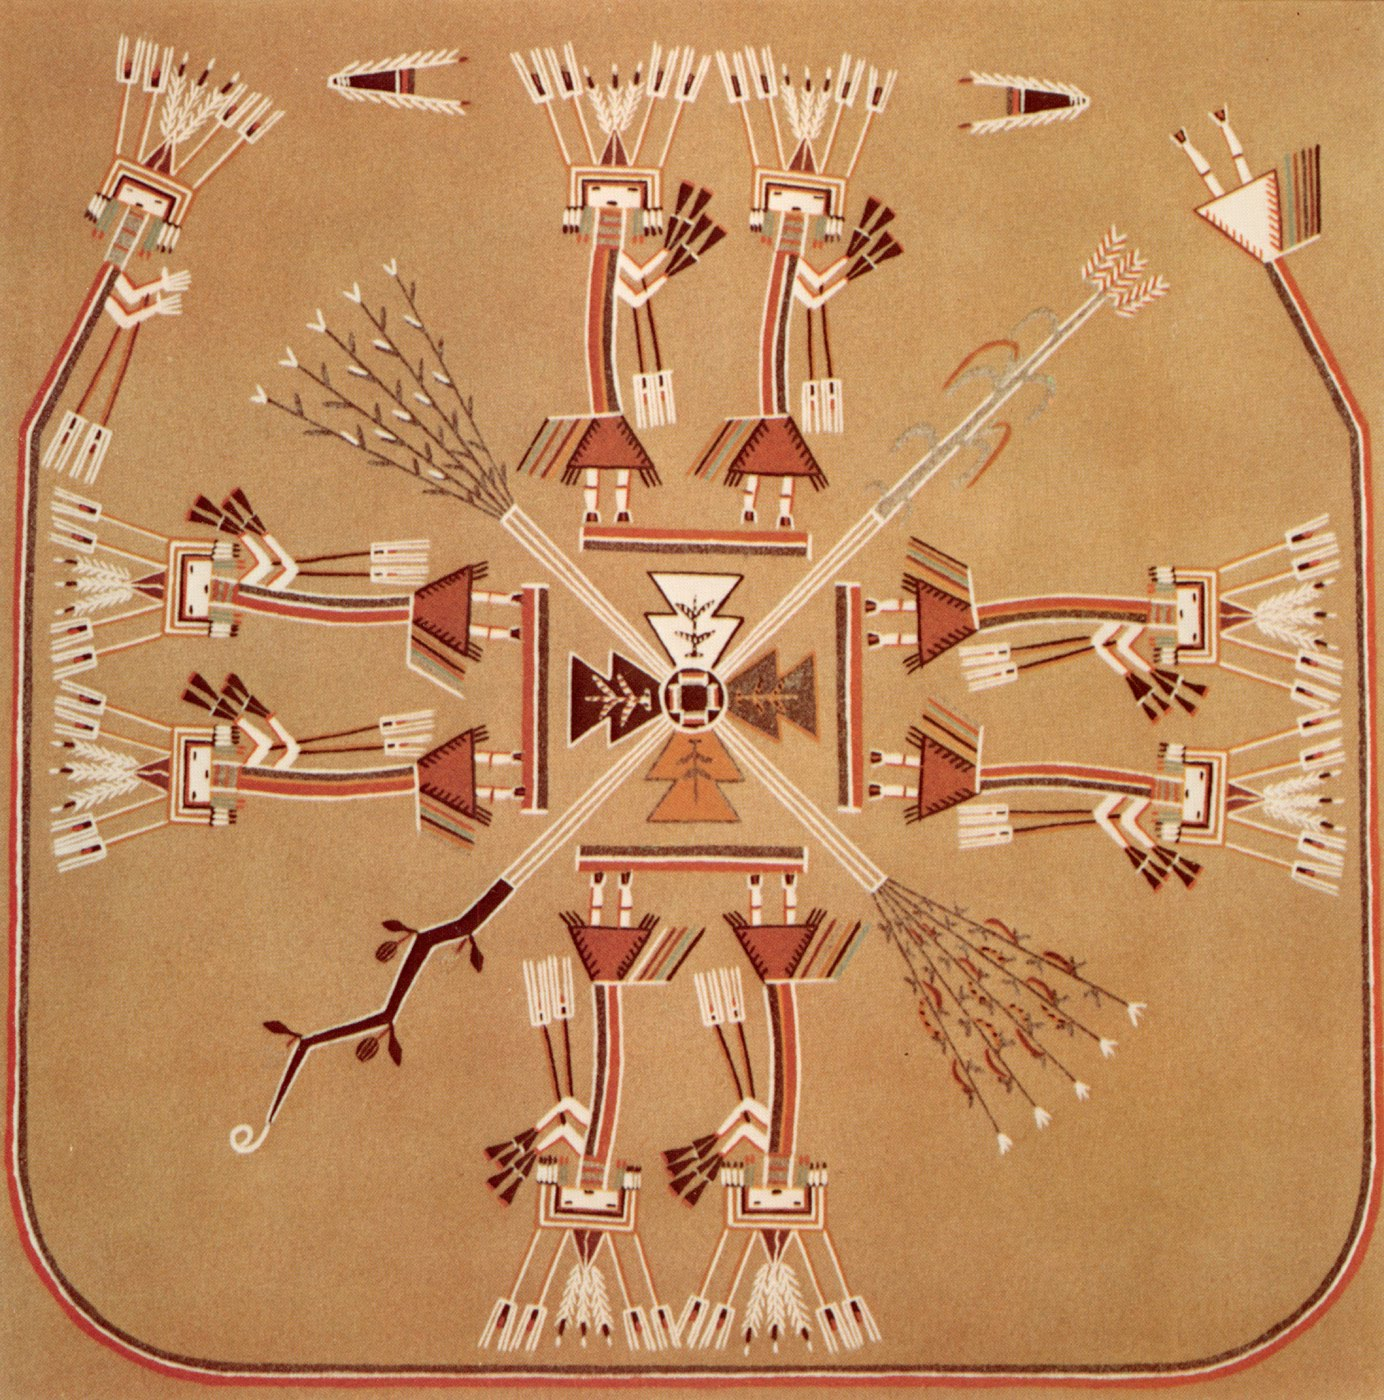 Chaudron pollen boy on the sun navajo sandpaintings this sandpainting is often erroneously referred to as eagle on the sun which is a complete misnomer since there is no such sandpainting biocorpaavc Images